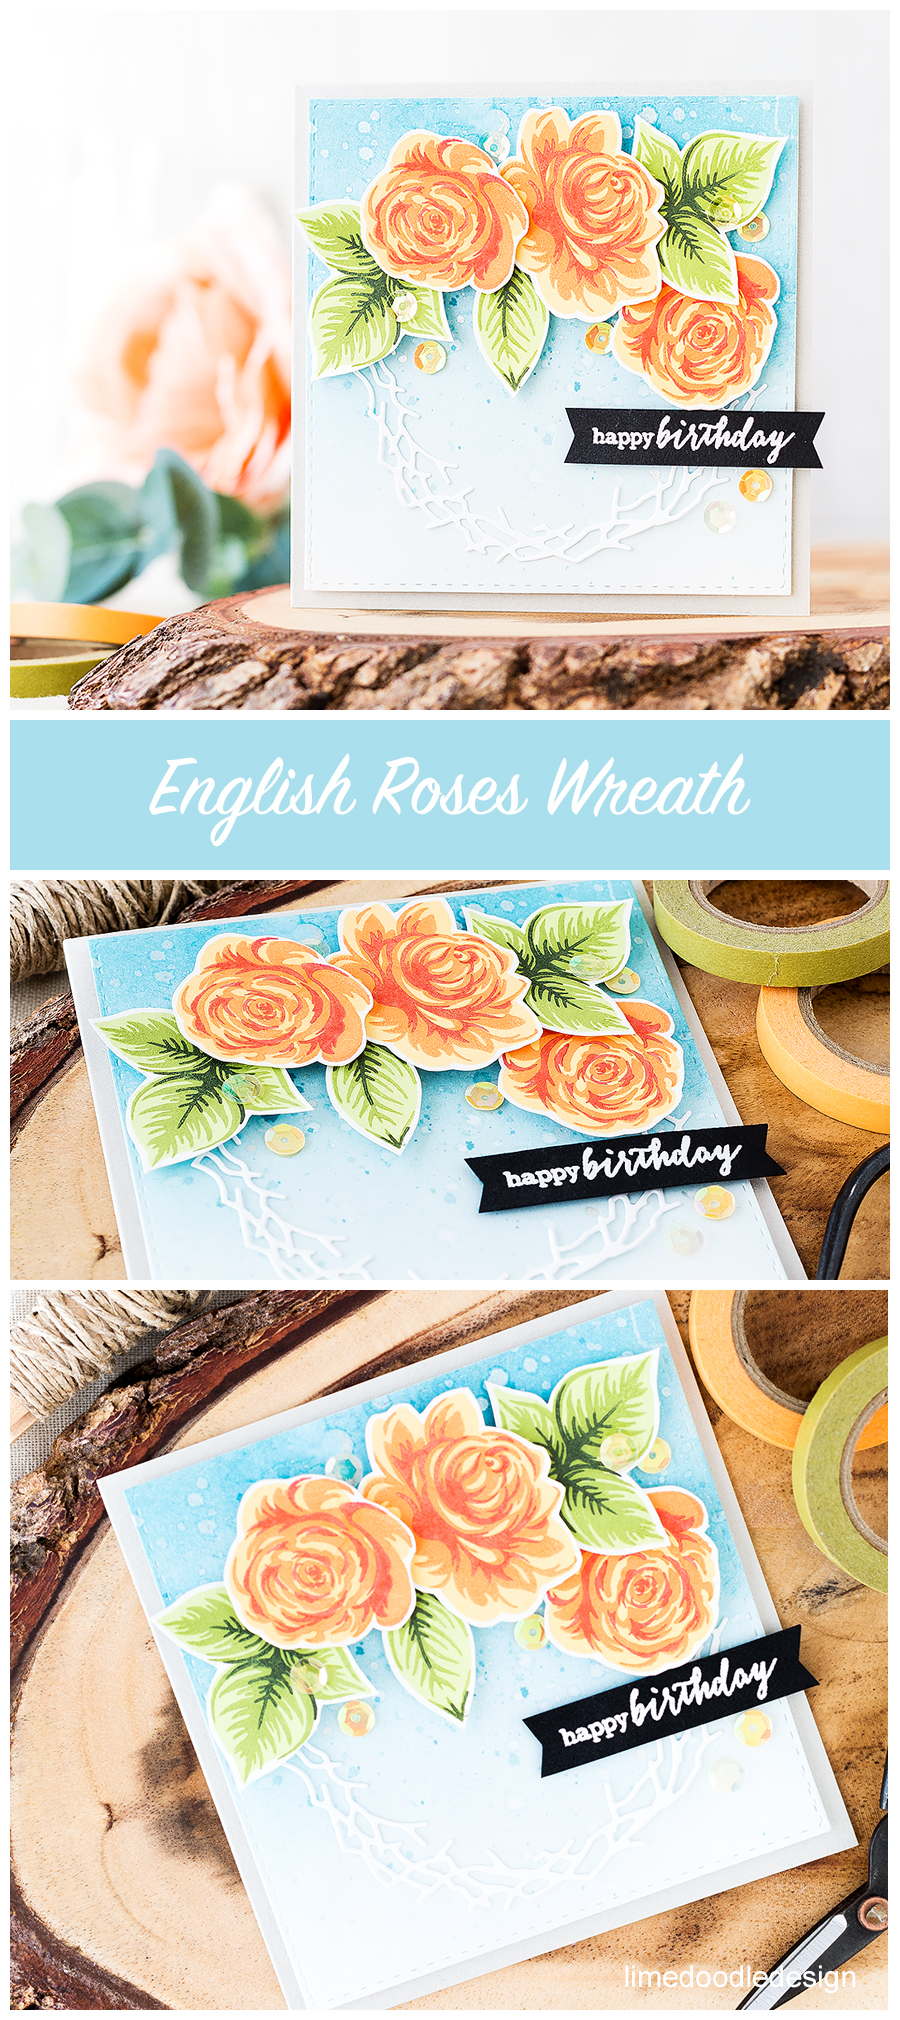 Stamp layering english roses birthday wreath card. Find out more about this card by clicking on the following link: https://limedoodledesign.com/2016/08/stamp-layering-english-roses-birthday-wreath/